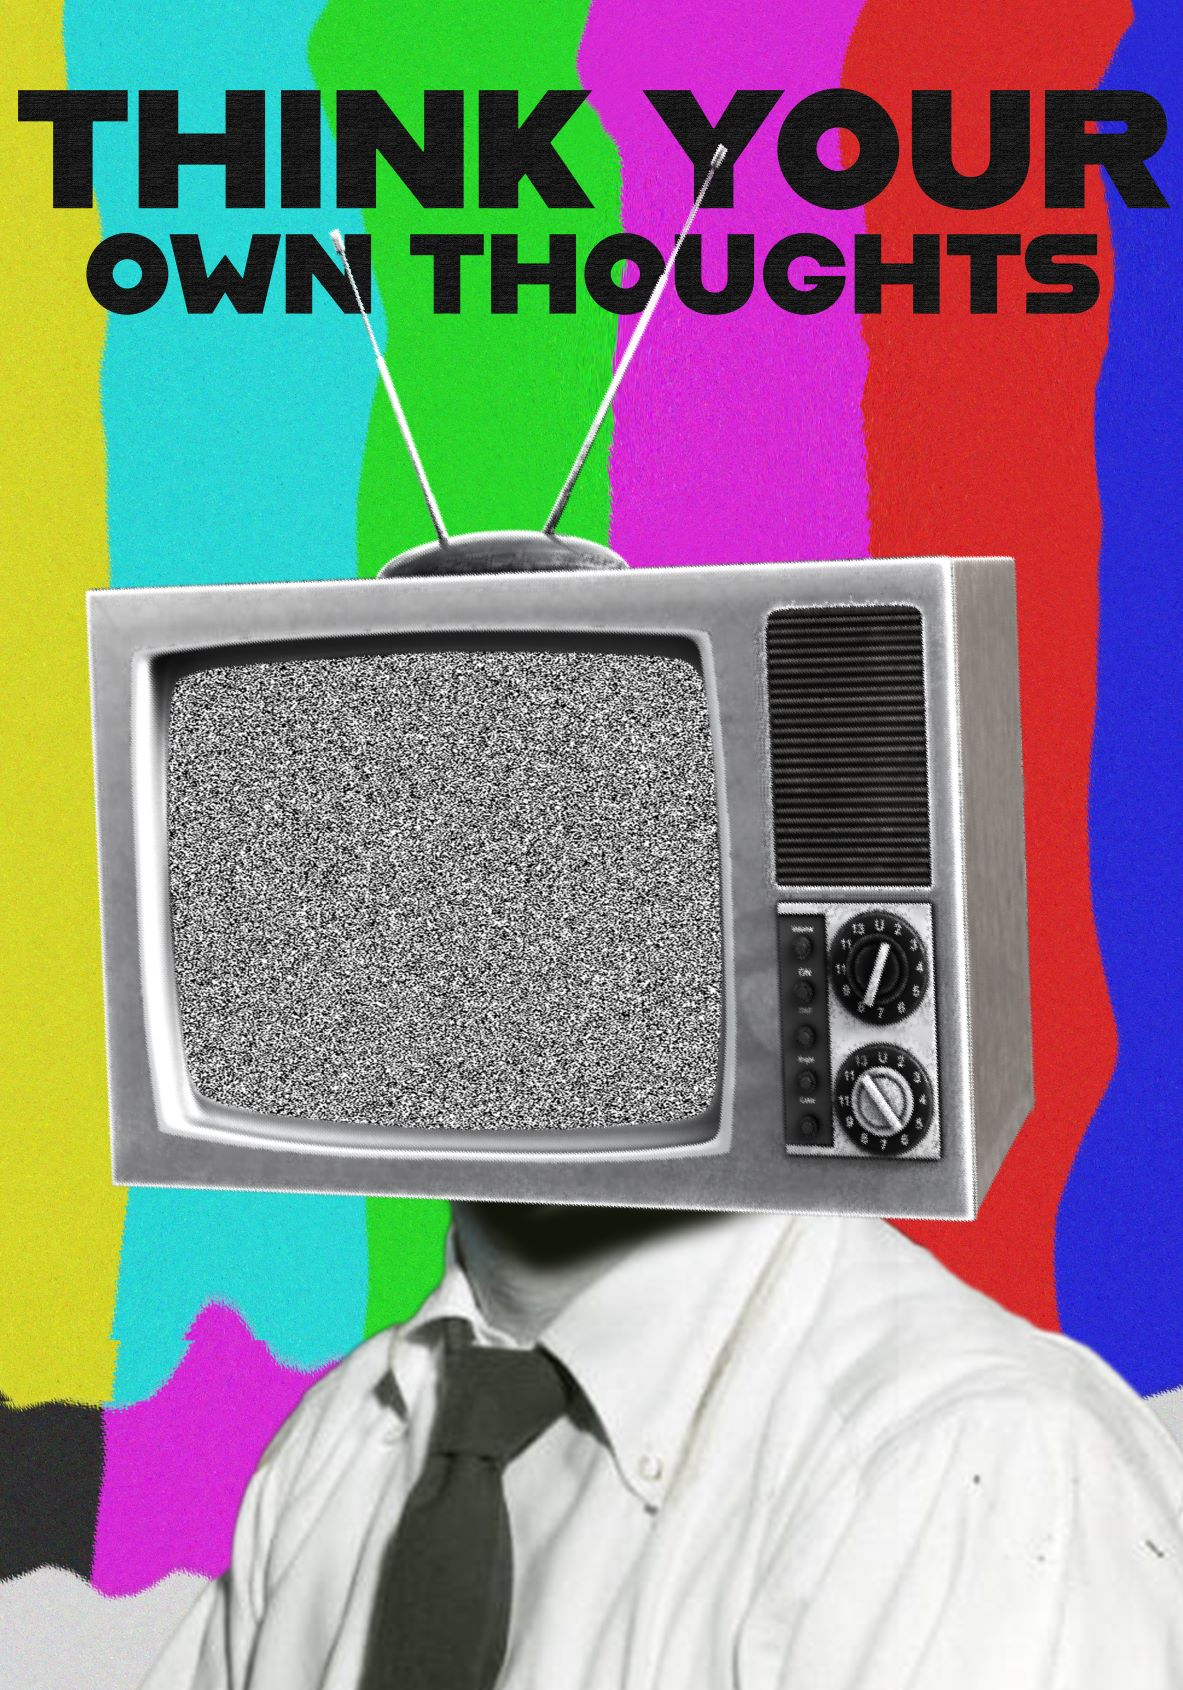 Image of person with television broadcasting static as head, image reads Think your own thoughts